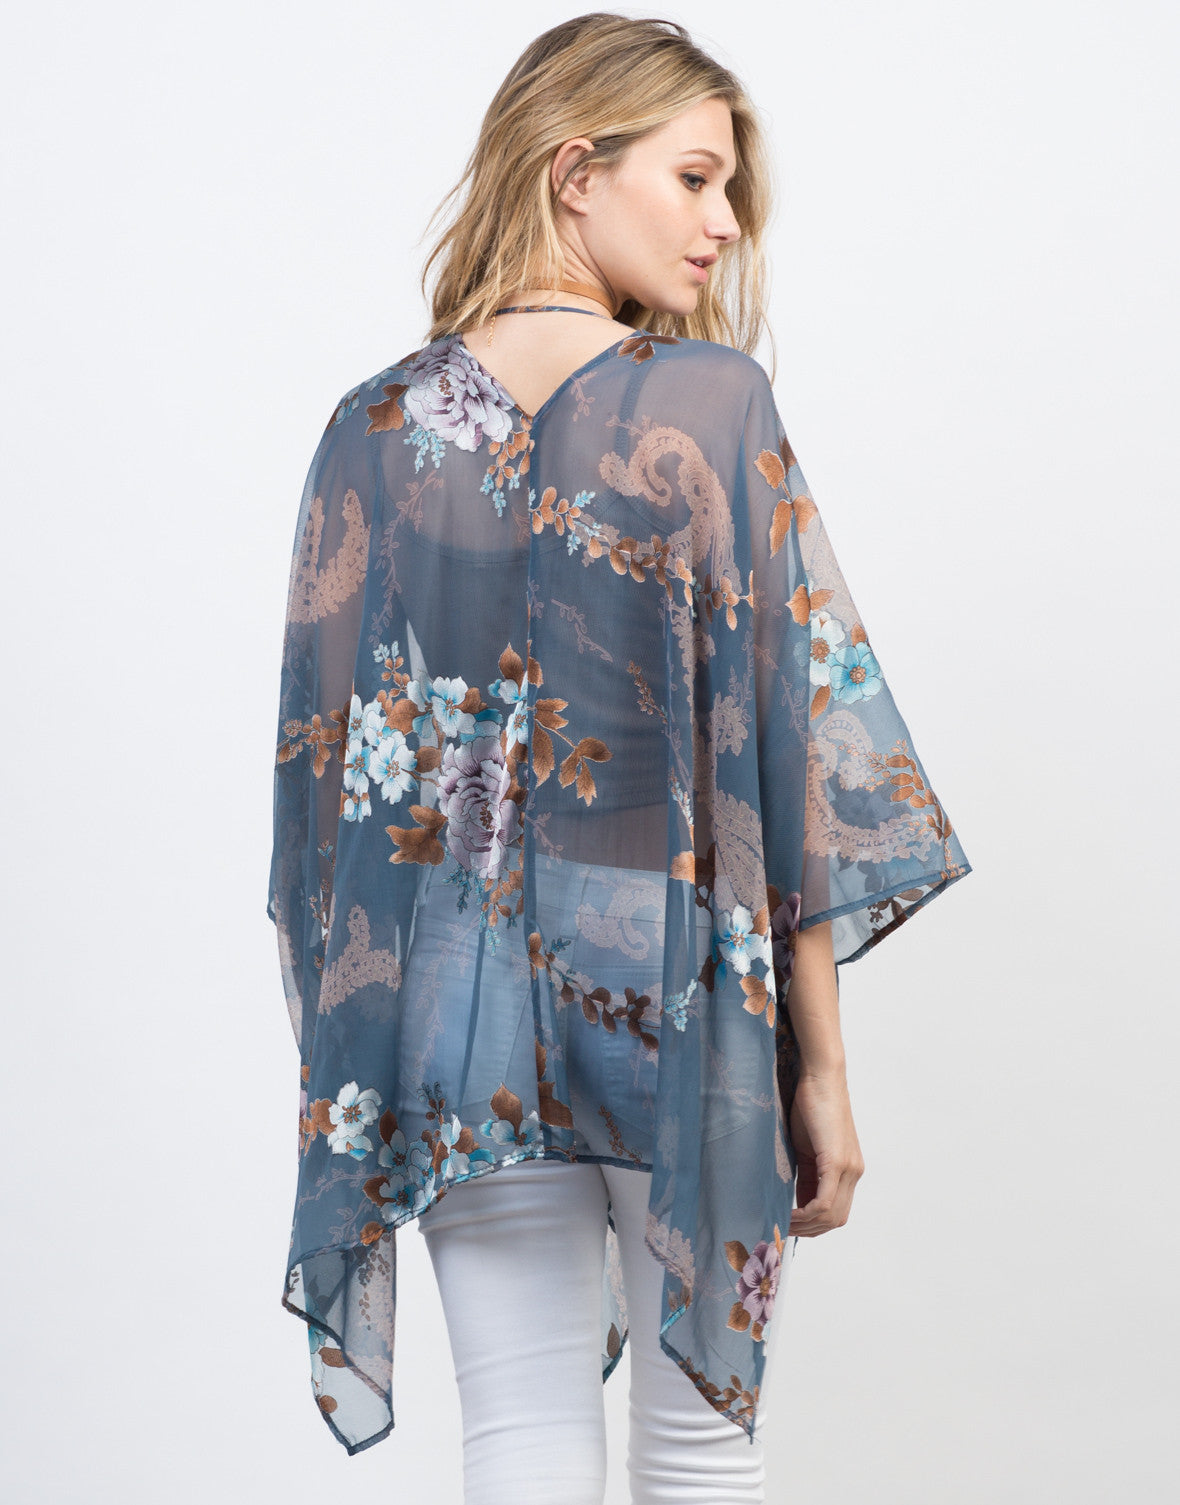 Back View of Metallic Floral Kimono Cardigan